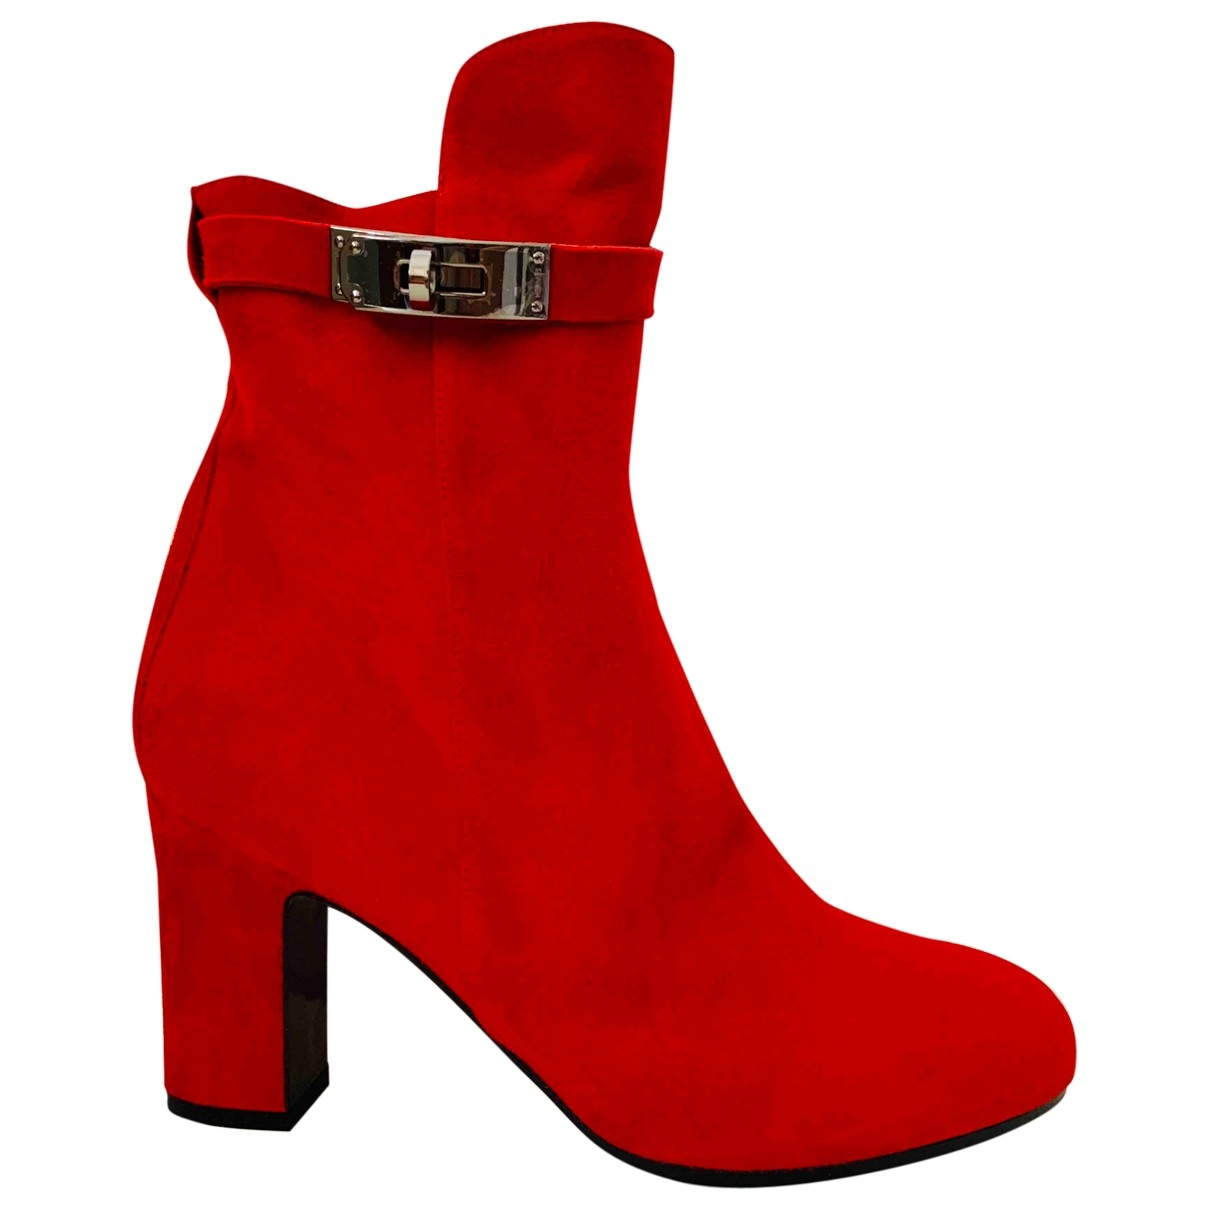 Hermès Joueuse Red Suede Ankle boots for Women 39.5 EU